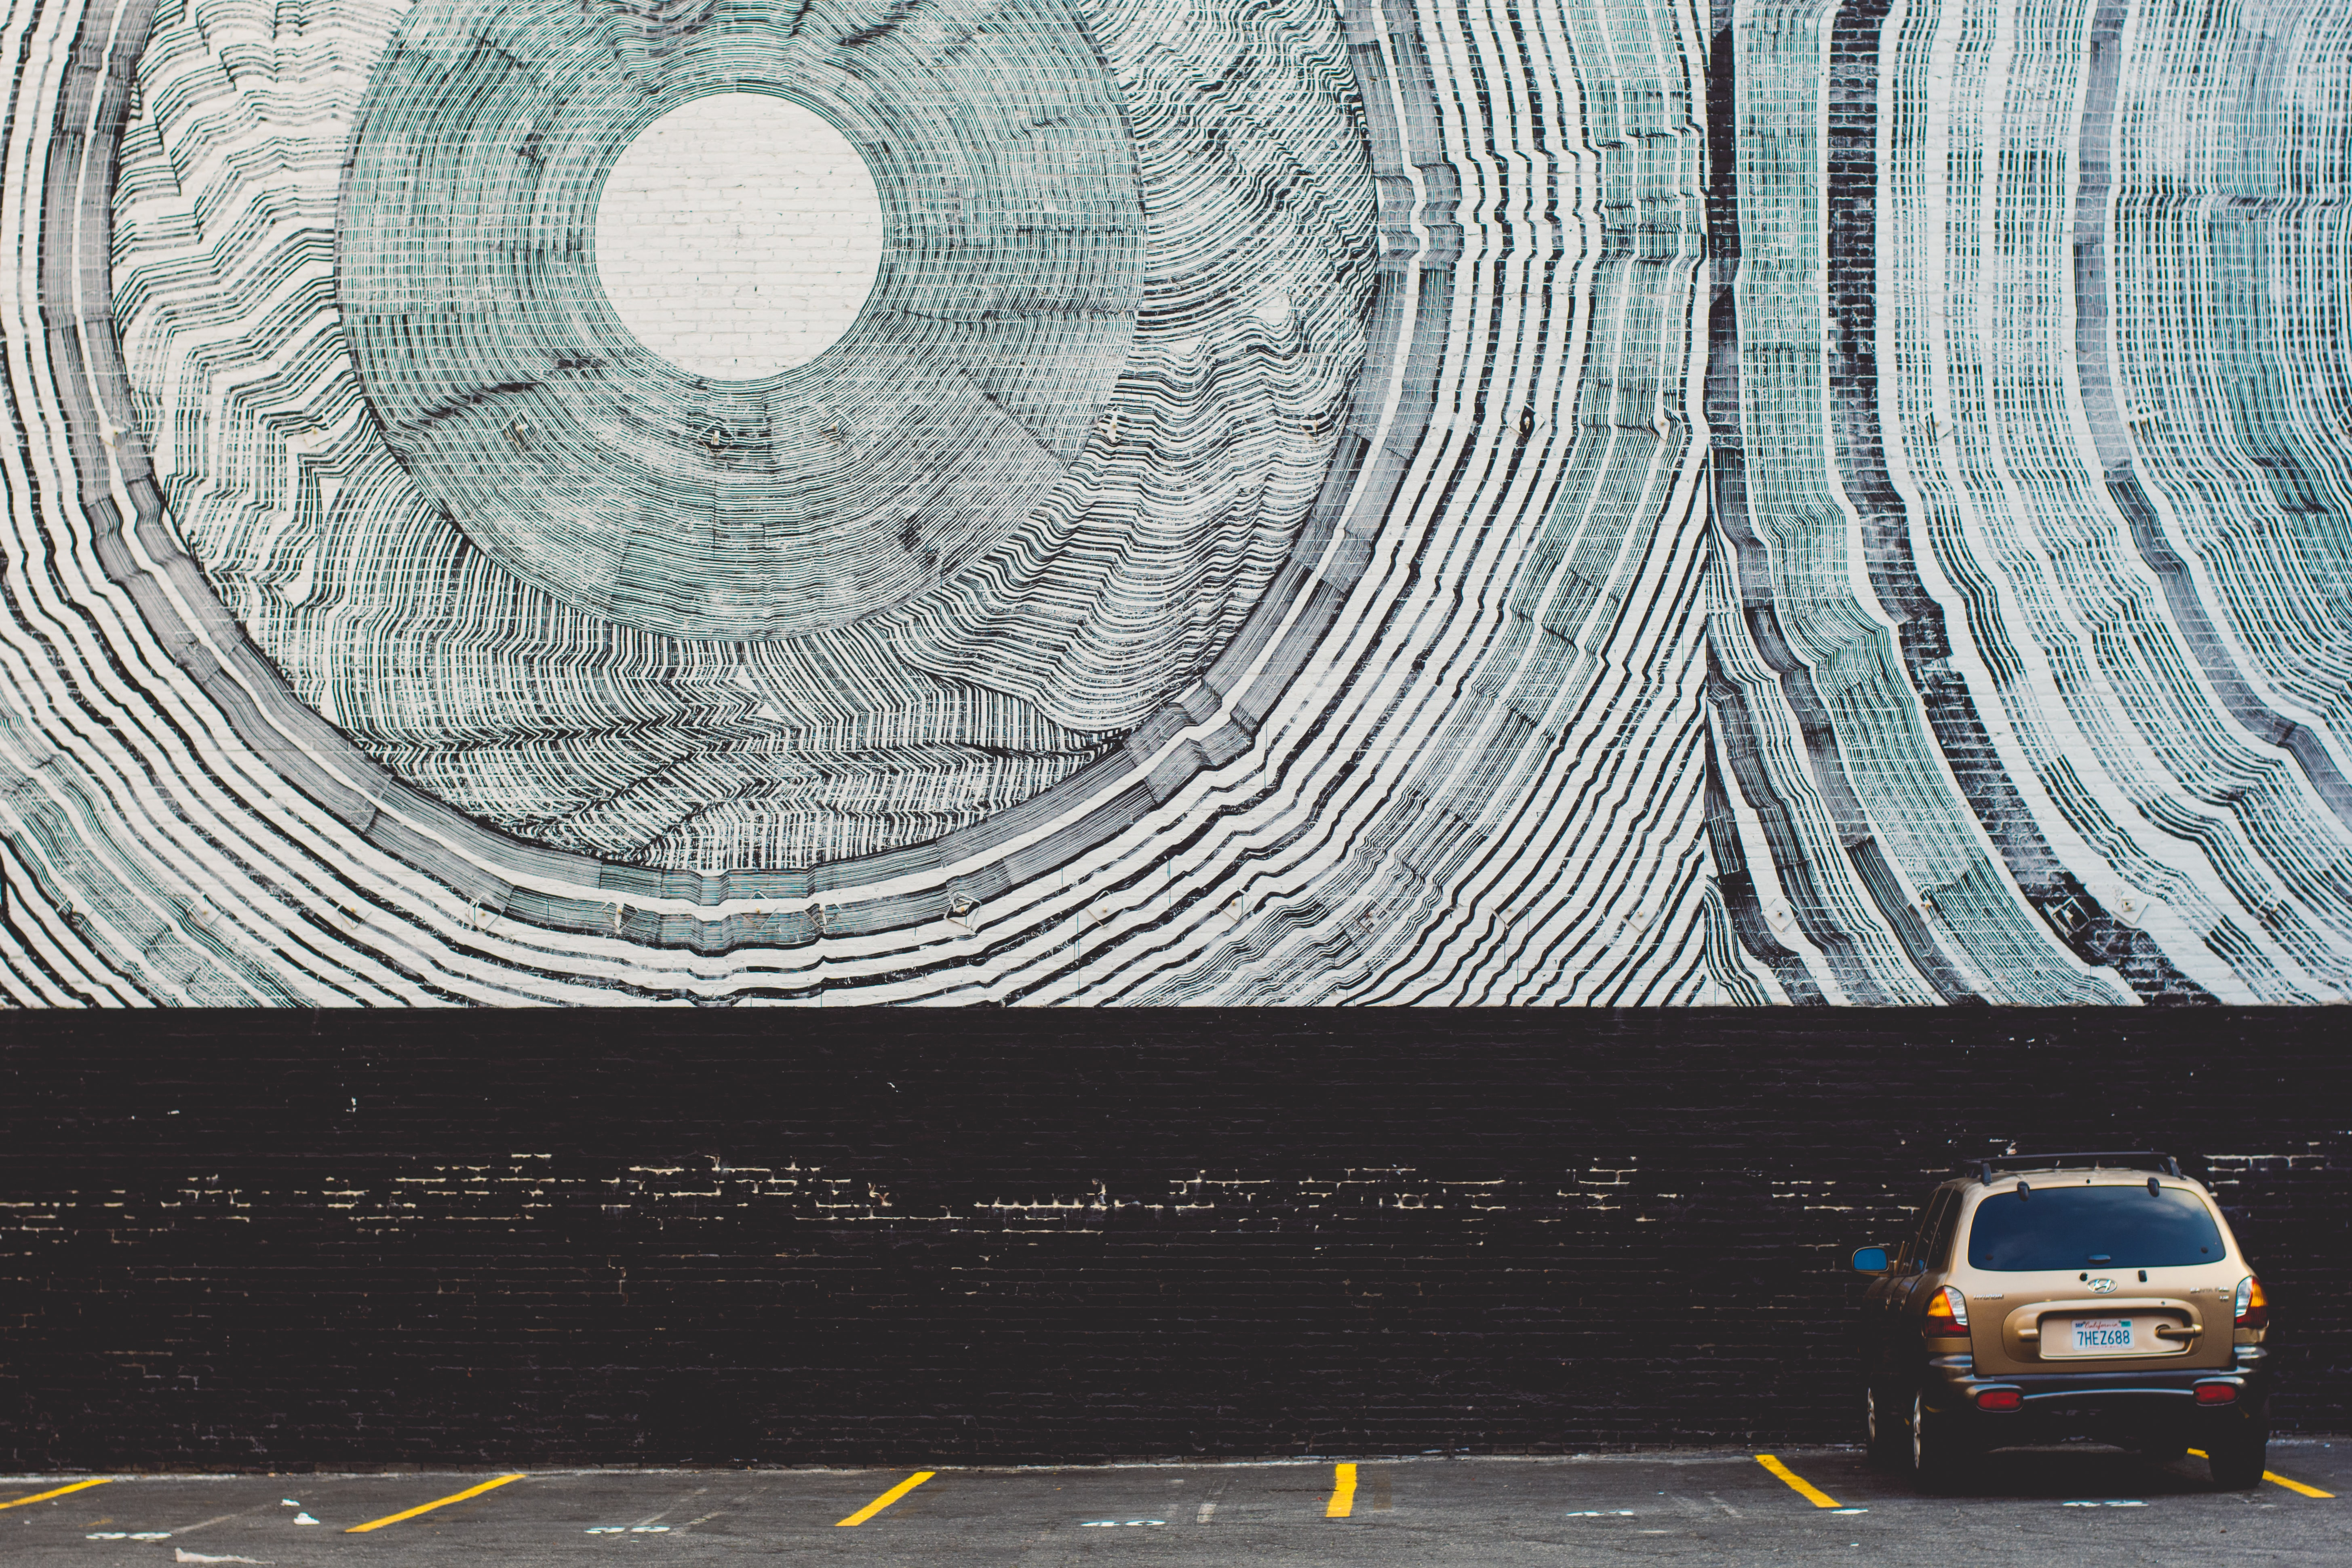 Mural in a Los Angeles with single car parked in parking lot